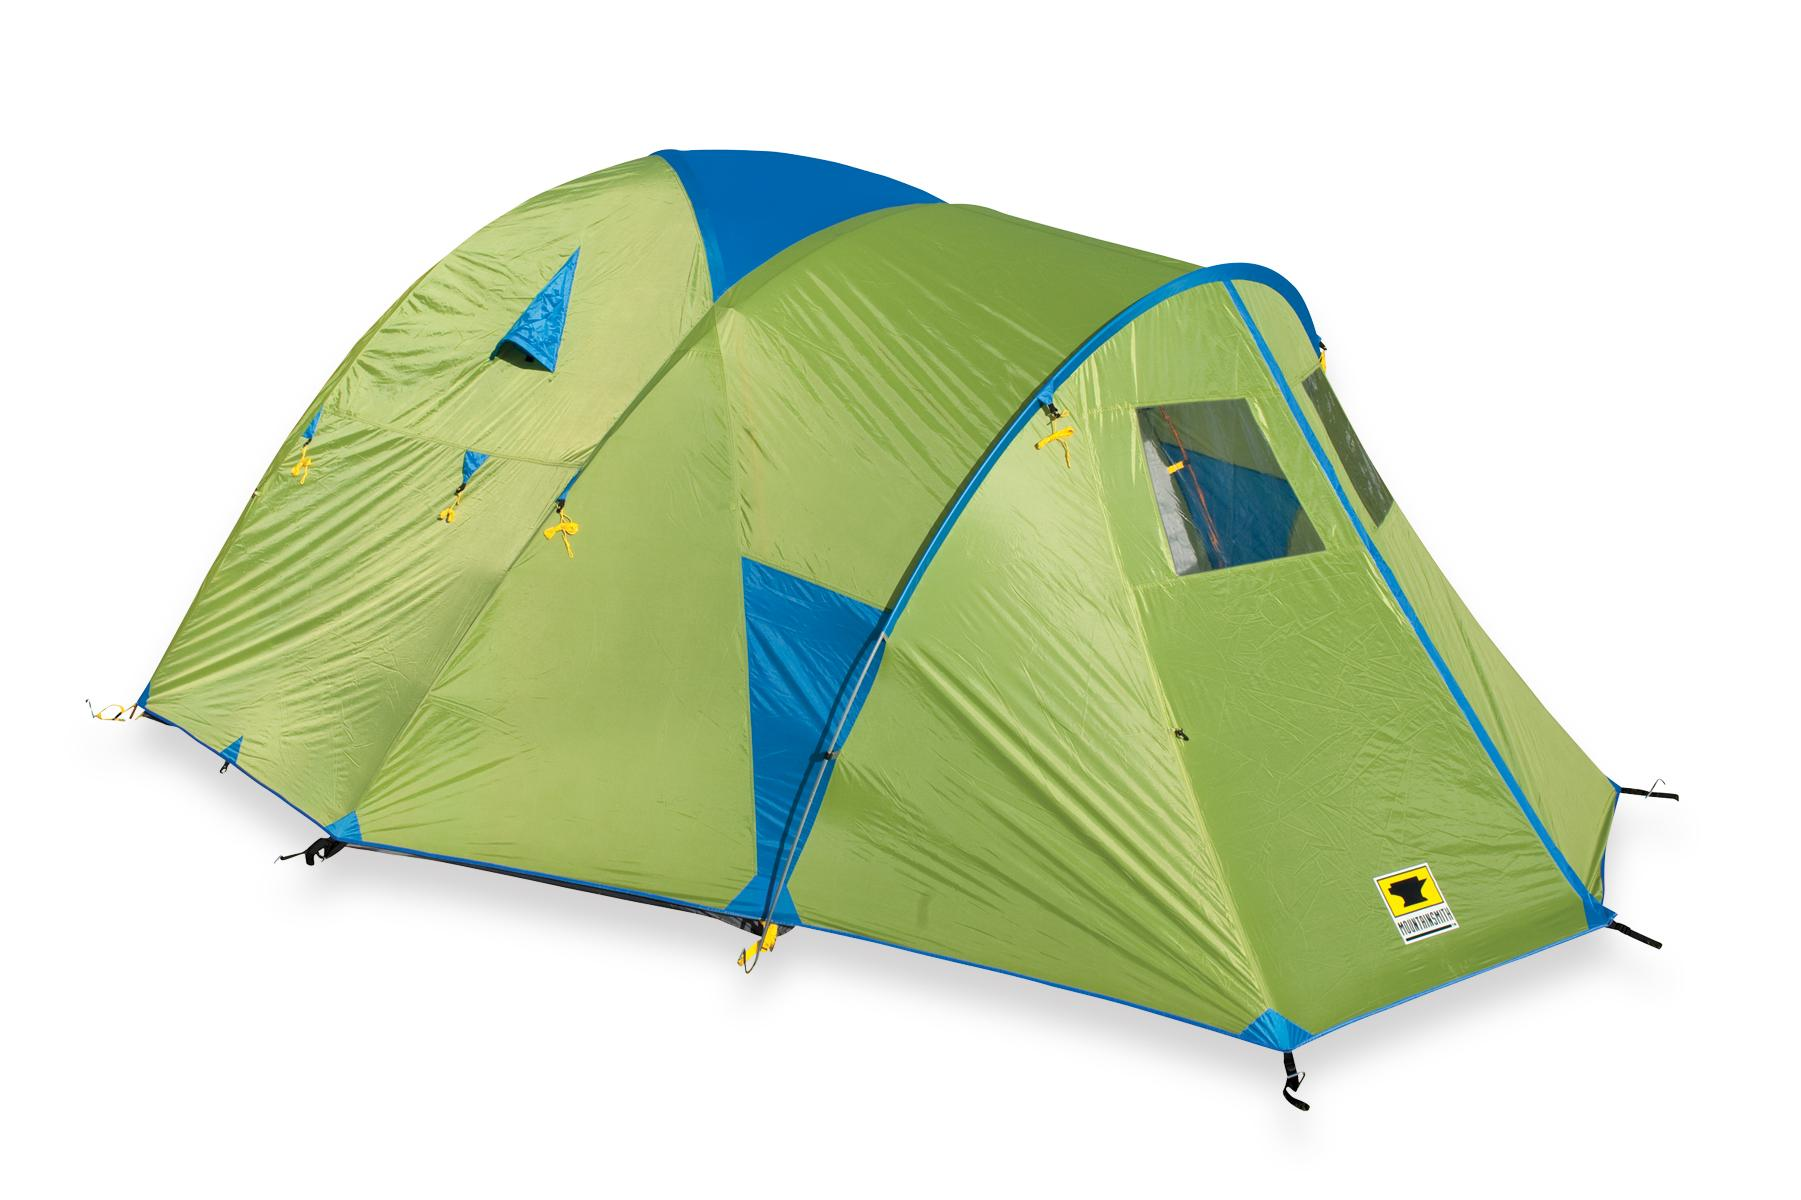 Conifer 5 Morrison 2 · Genesee 4 · Mountain Dome 2 · Mountain Dome 3 · Mountain Shelter  sc 1 st  Amazon.com & Amazon.com : Mountainsmith Conifer 5+ Person 3 Season Tent (Citron ...